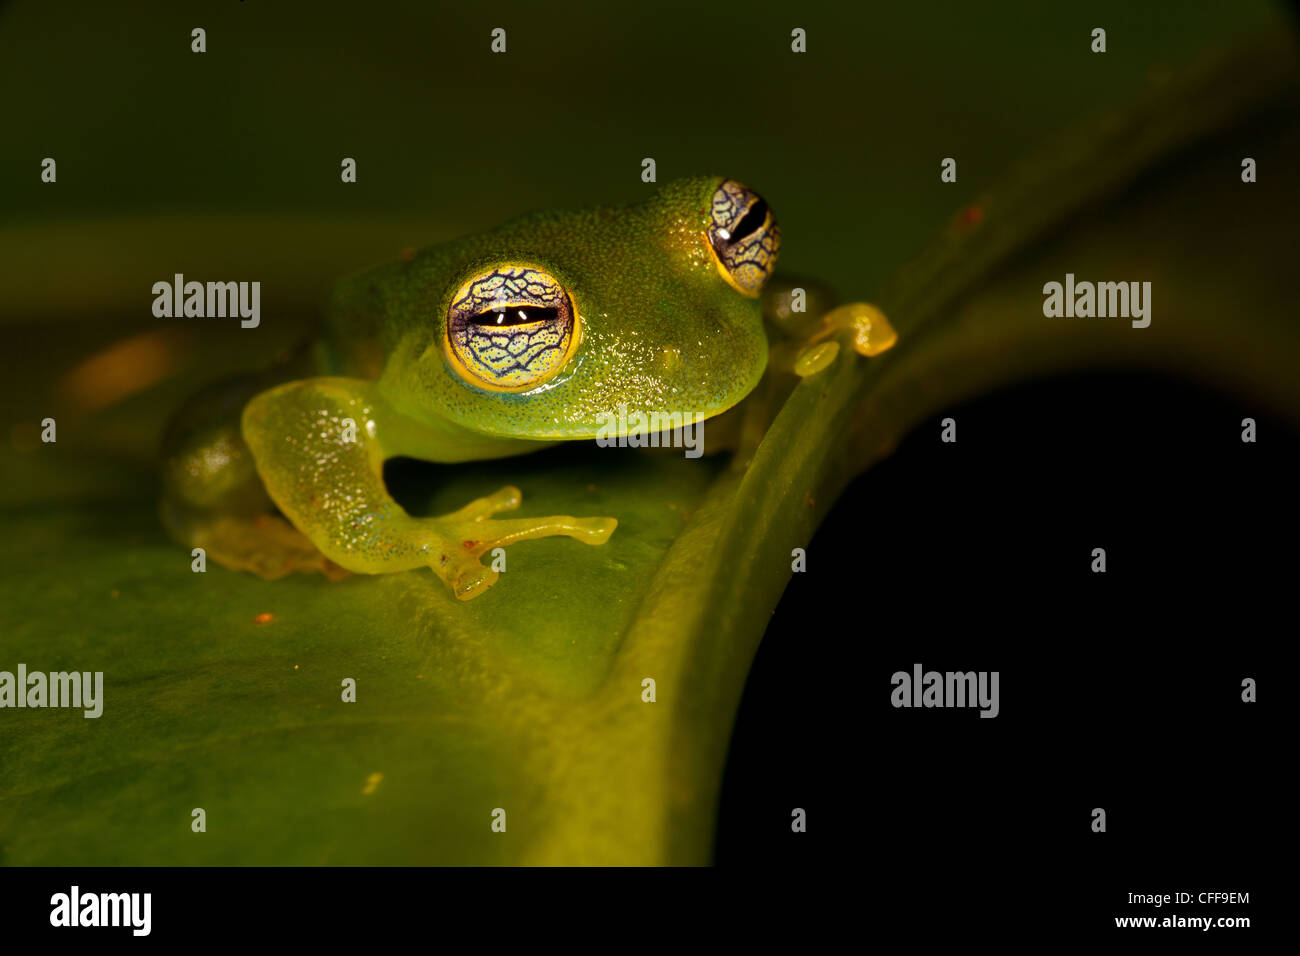 Spiny Cochran Frog, Teratohyla spinosa, at nighttime in the rainforest at Burbayar nature reserve, Panama province, Republic of Panama. Stock Photo